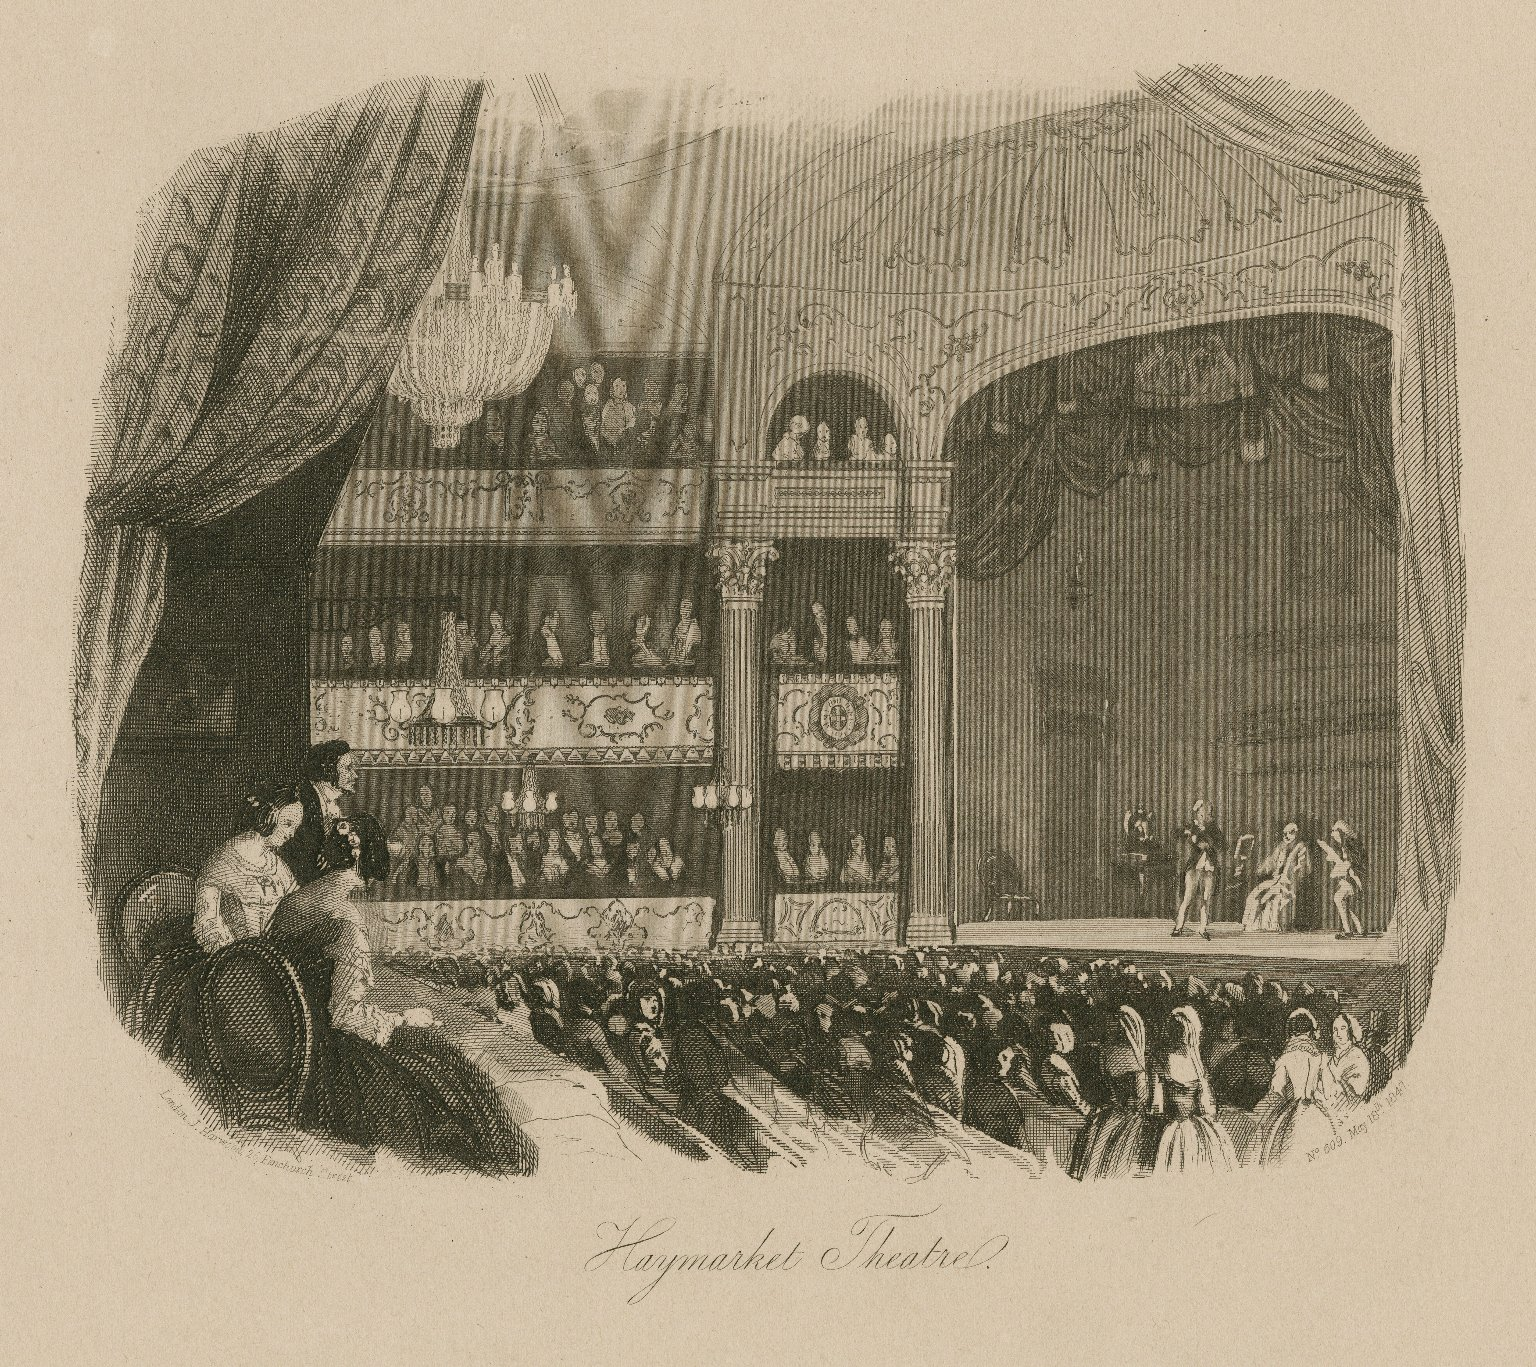 <b>Haymarket Theatre, 1847</b>     	</br>Interior of Haymarket Theatre, London, 1847</br><br/><b>Source: </b><i>Haymarket Theatre (Call number: ART File L847t1 H1 no.3), 1847, Folger Digital Image Collection, University of Cincinnati Libraries Digital Collections, University of Cincinnati, http://digproj.libraries.uc.edu:8180/luna/servlet/s/5ldg9m</i>